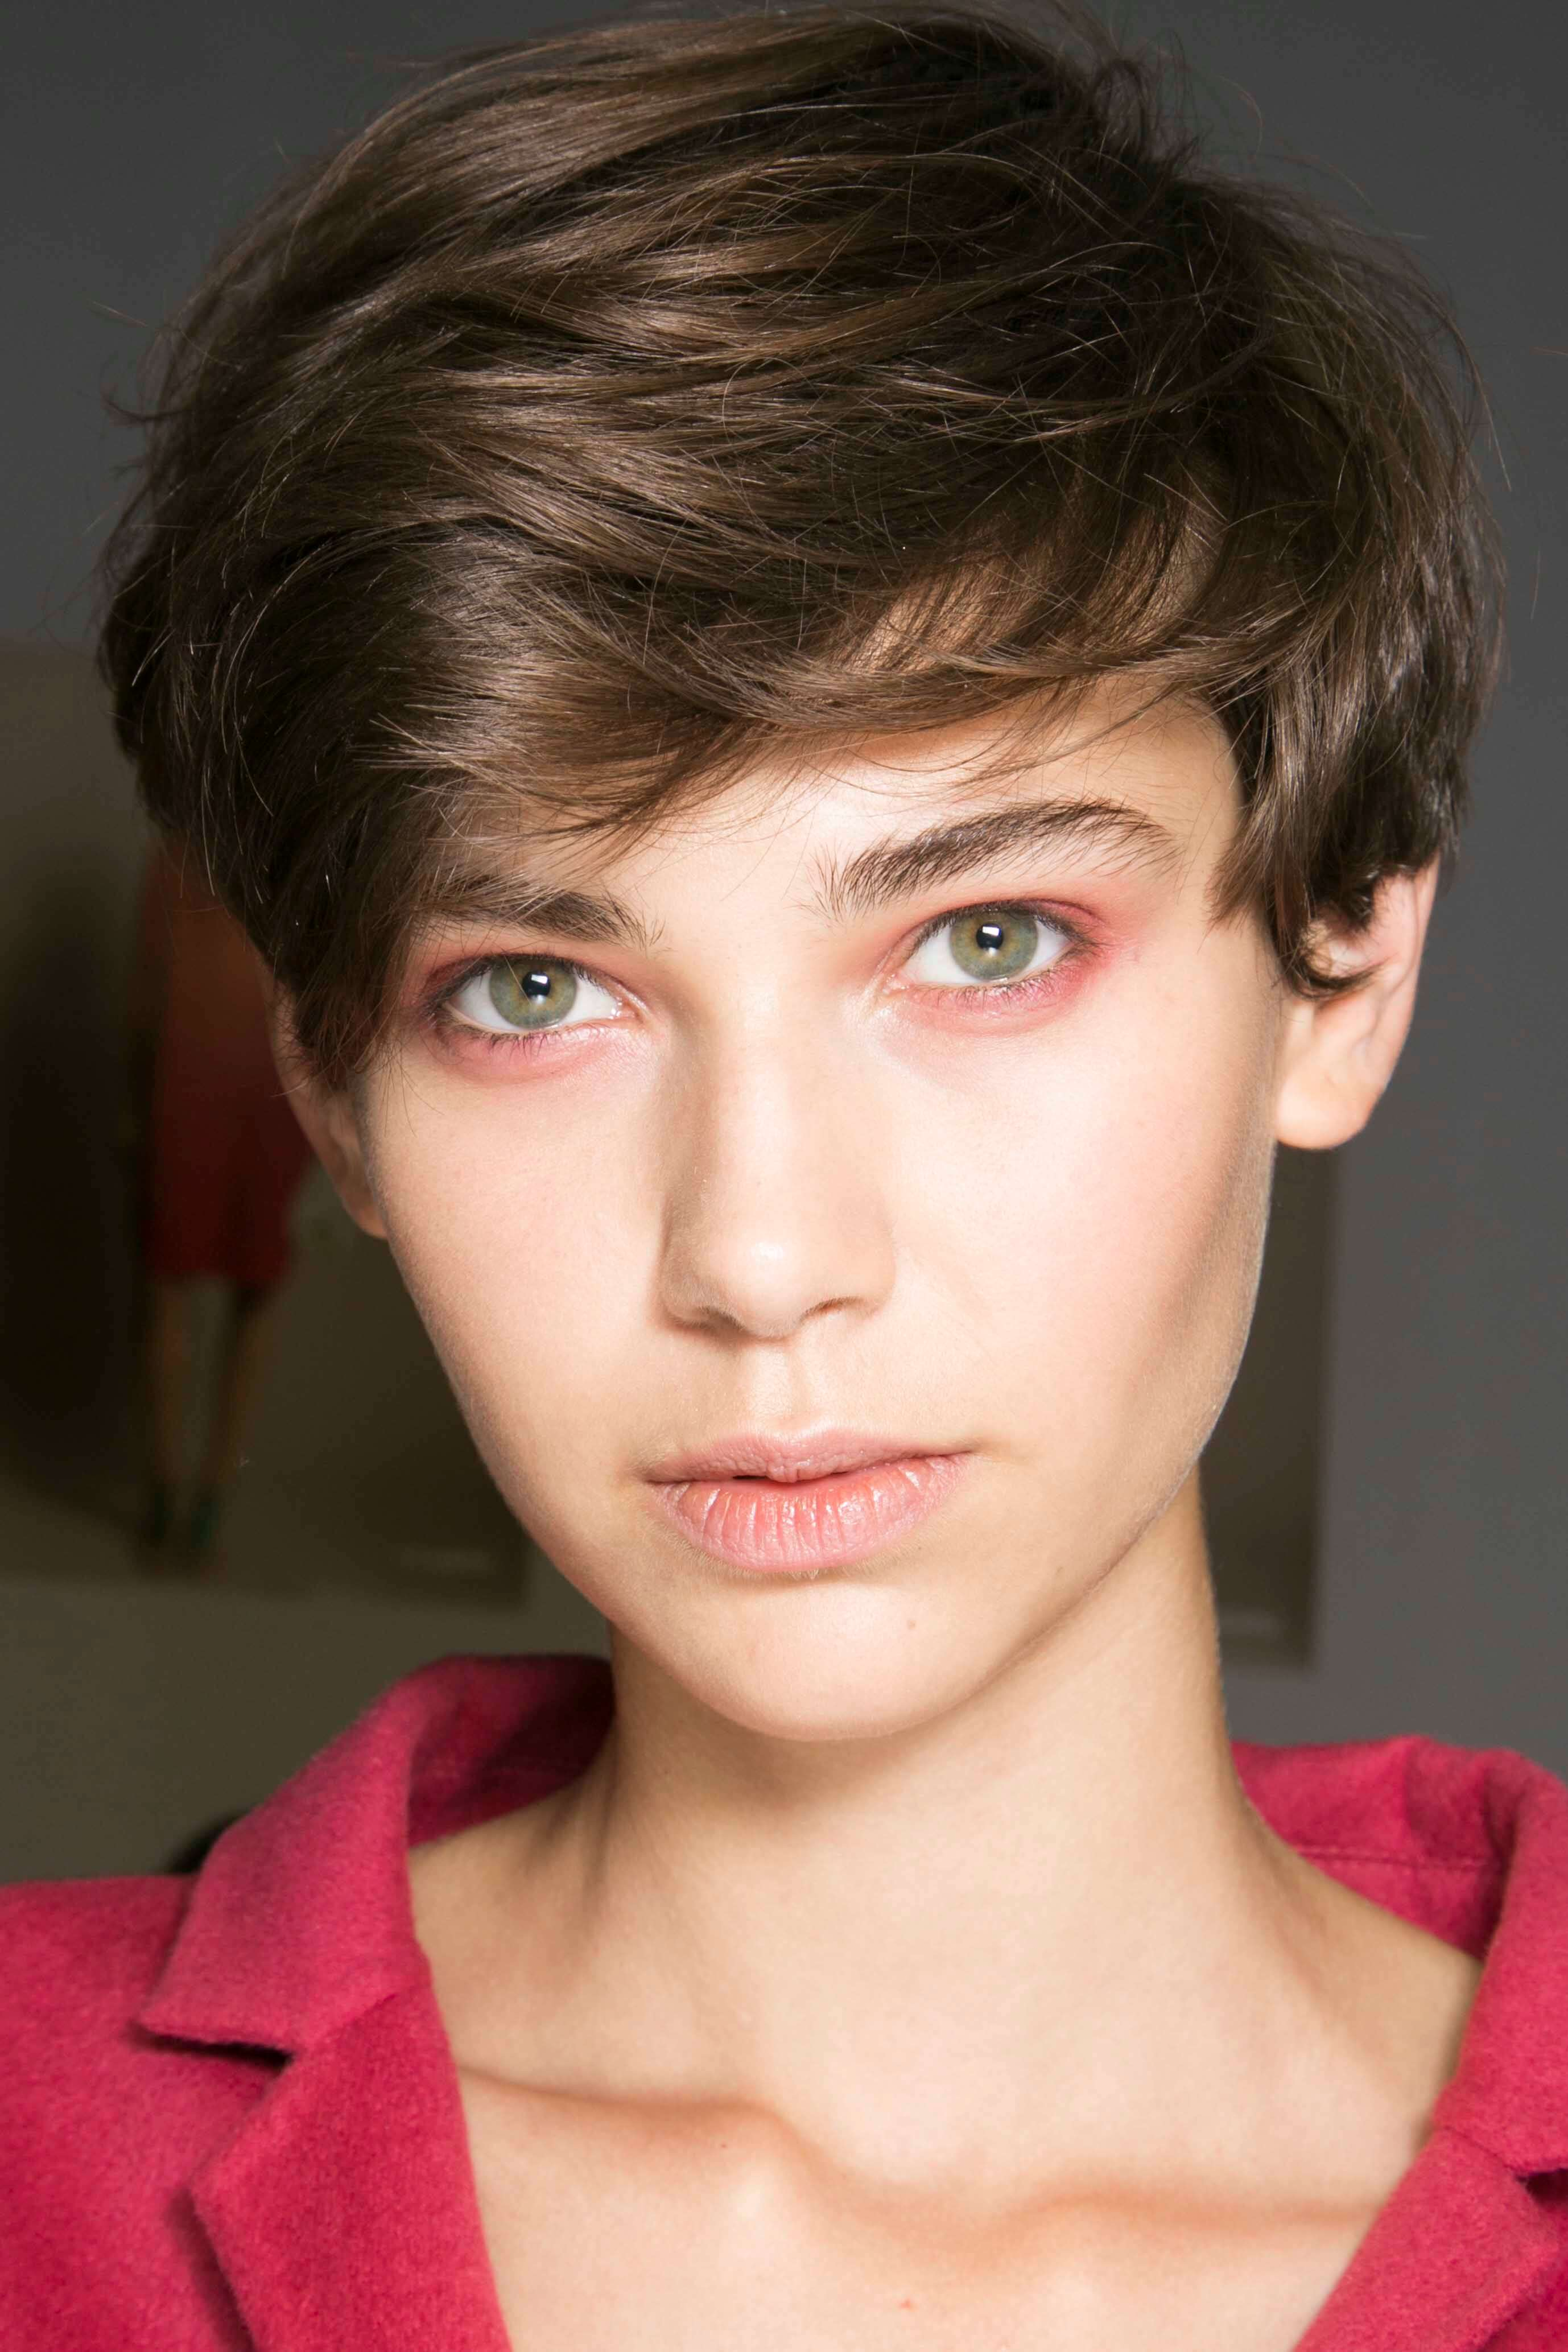 Short hairstyles for long faces the most flattering cuts to try grown out pixie cut short hairstyles for long faces winobraniefo Gallery